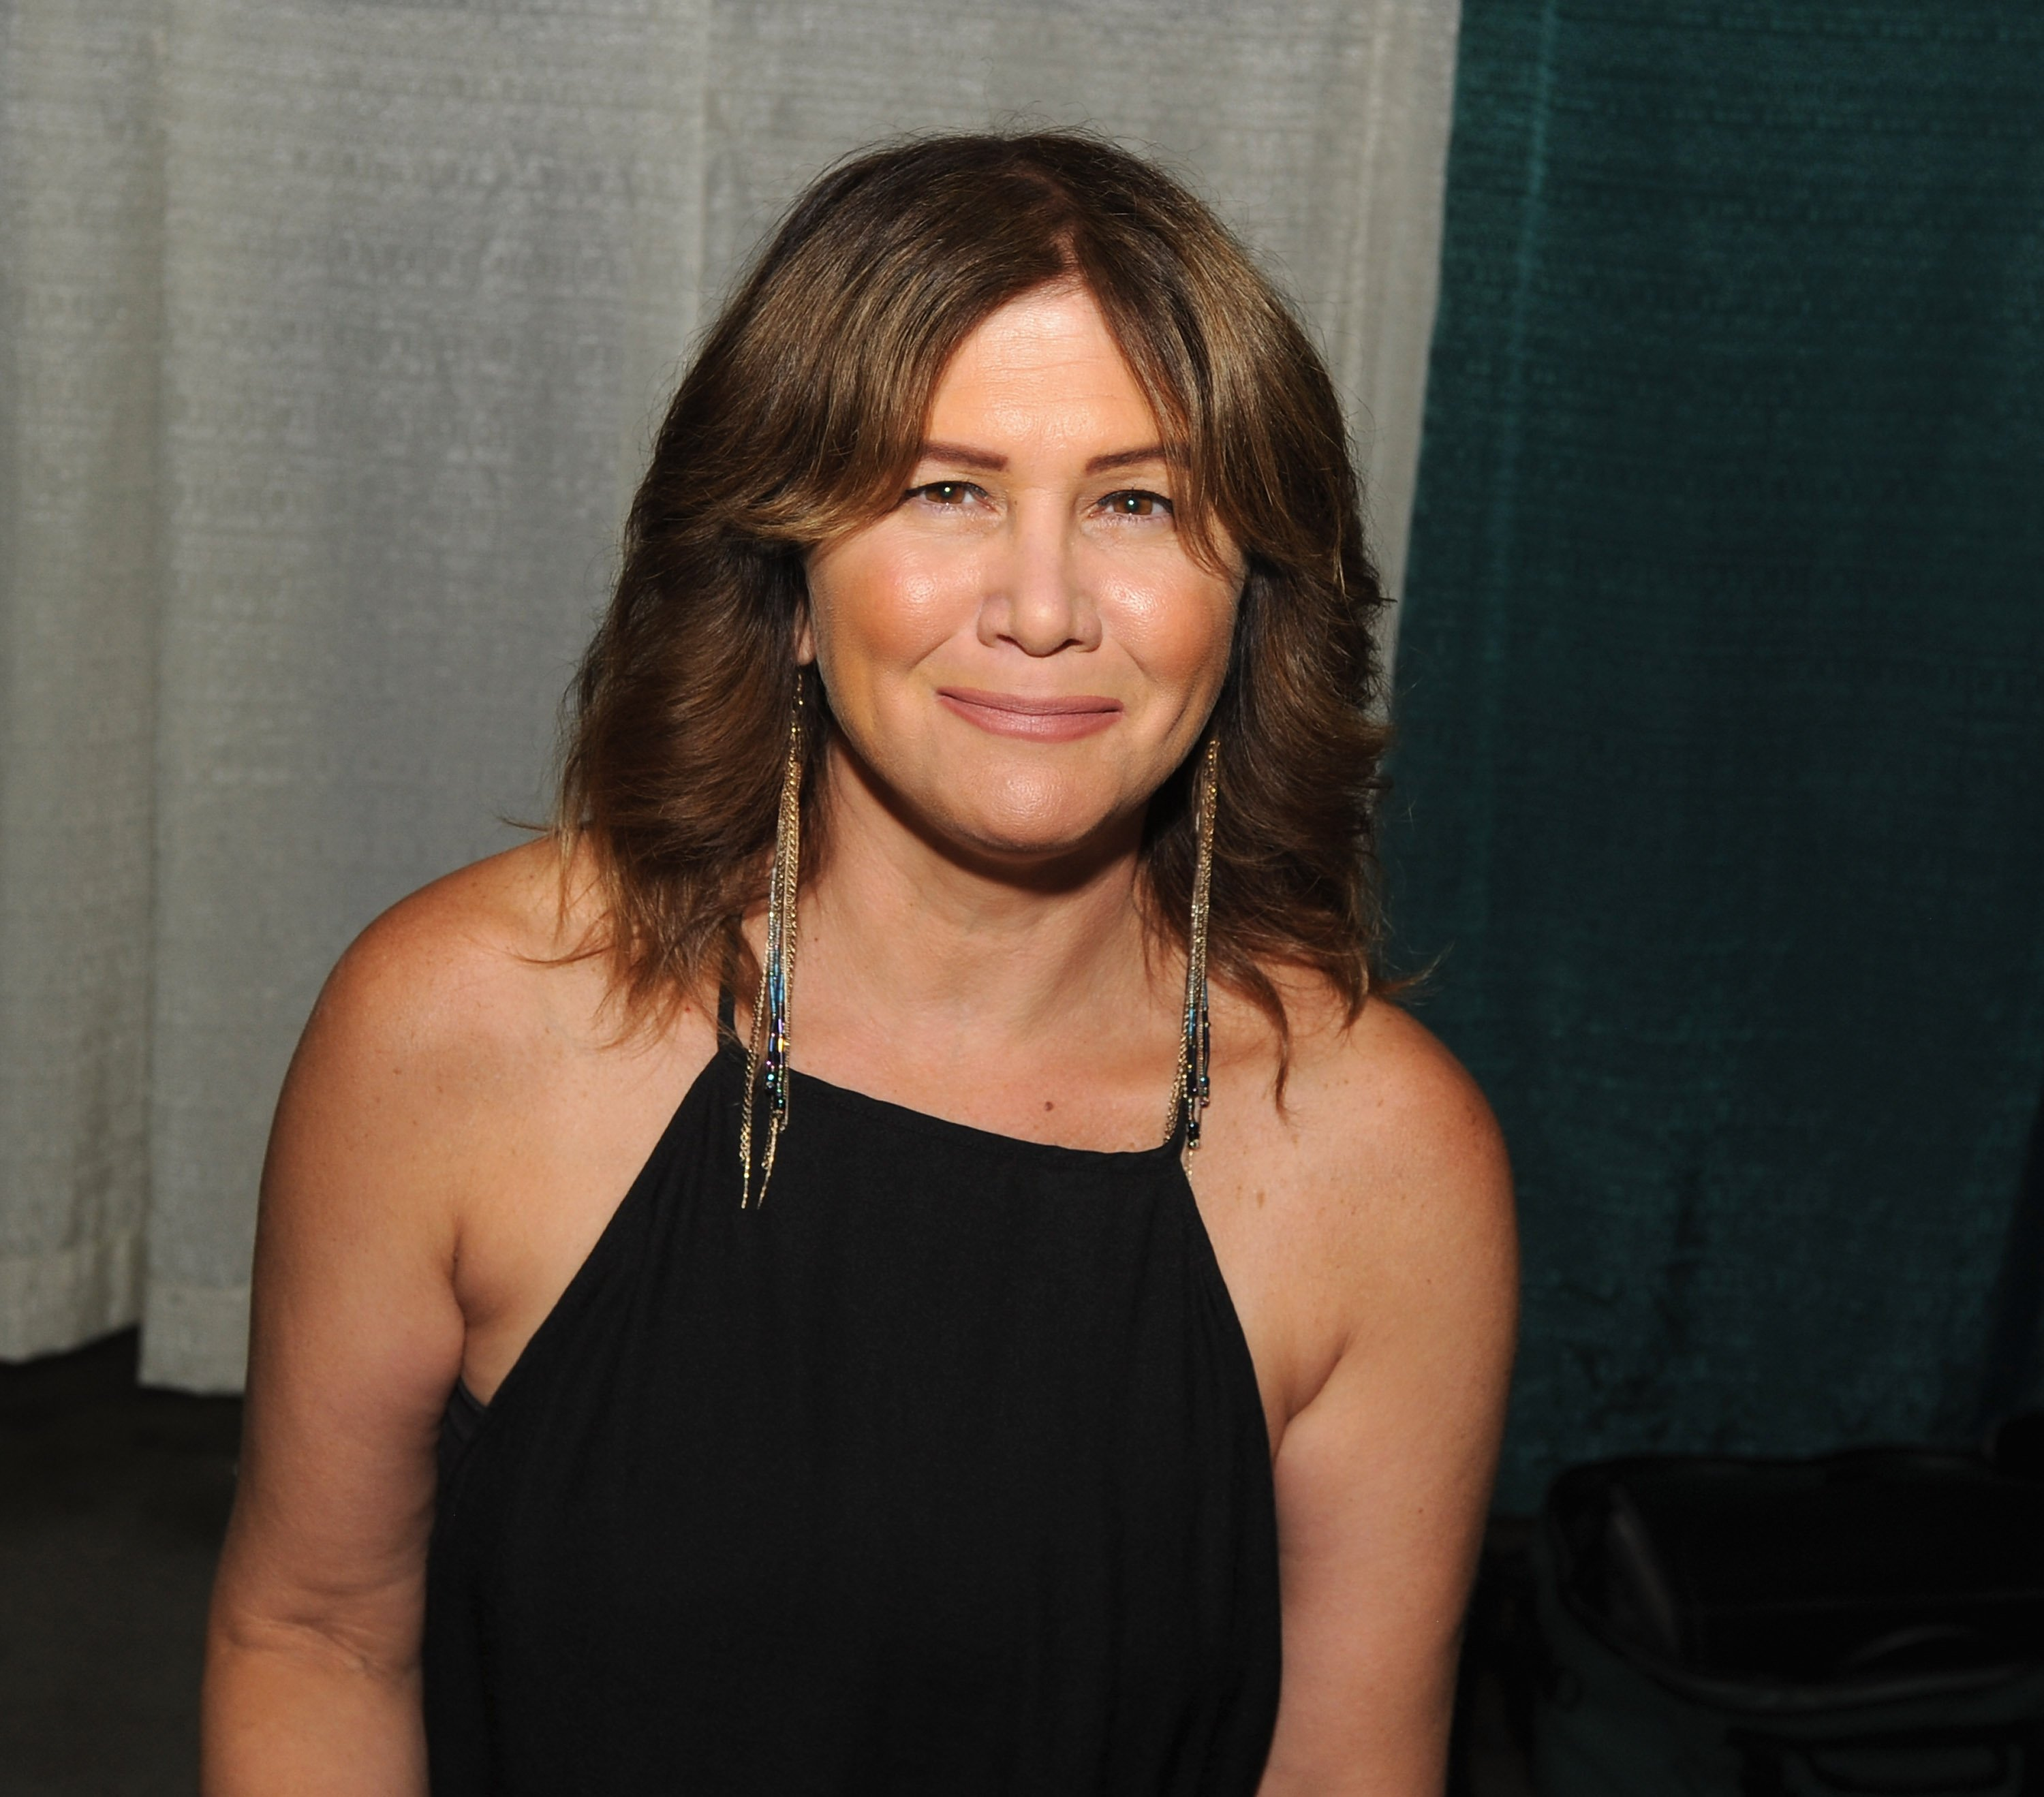 Tracey Gold on August 17, 2018 in St. Charles, Missouri | Source: Getty Images